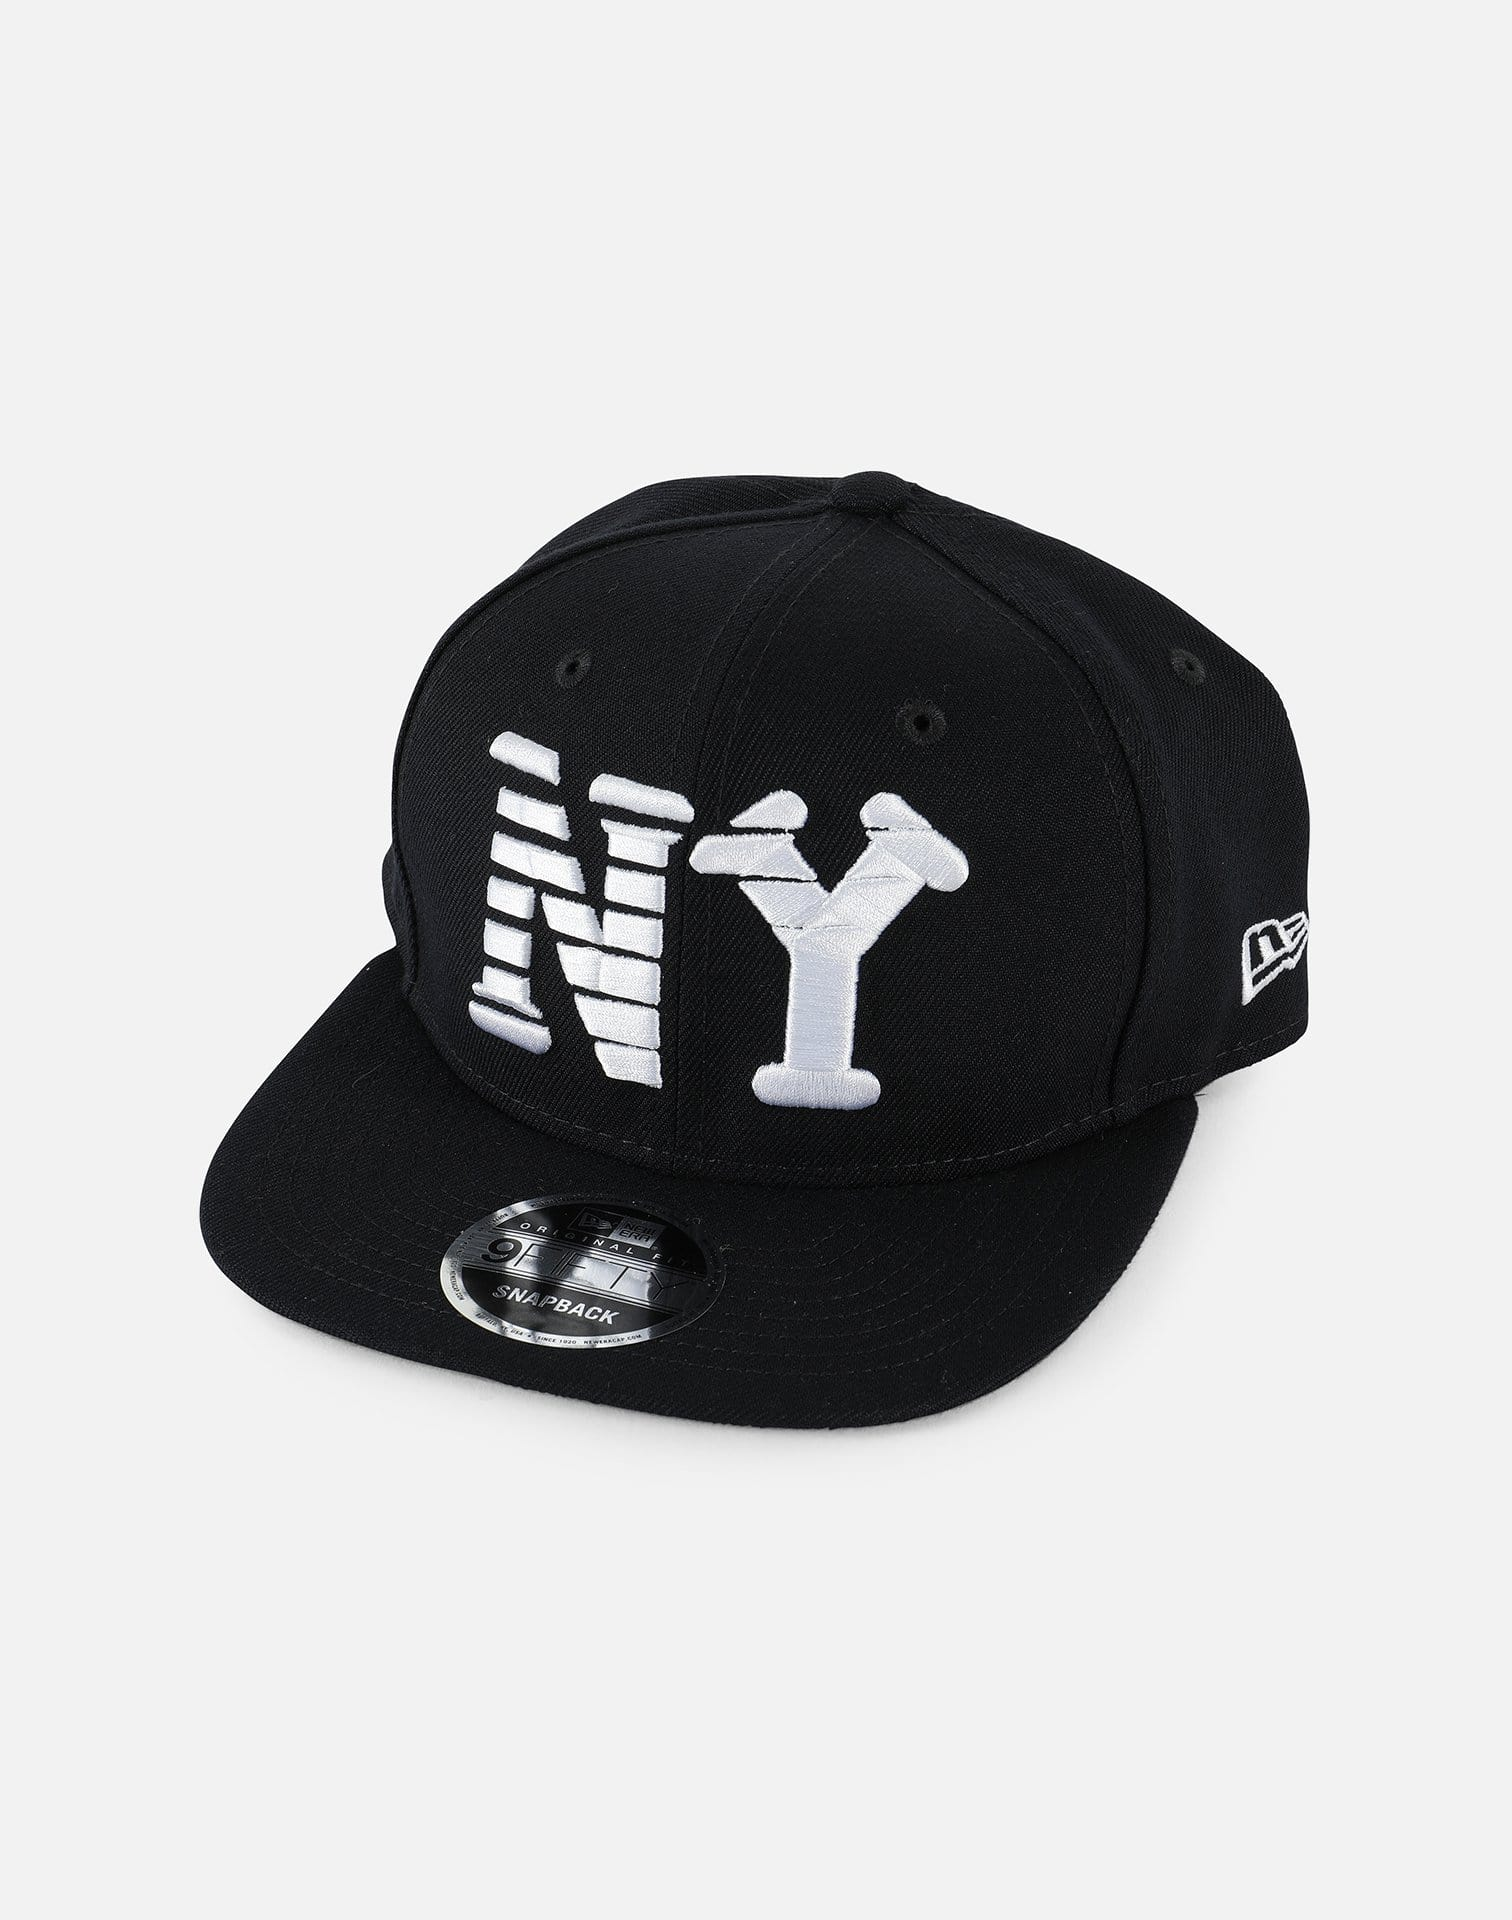 New Era MLB New York Yankees Snapback Hat